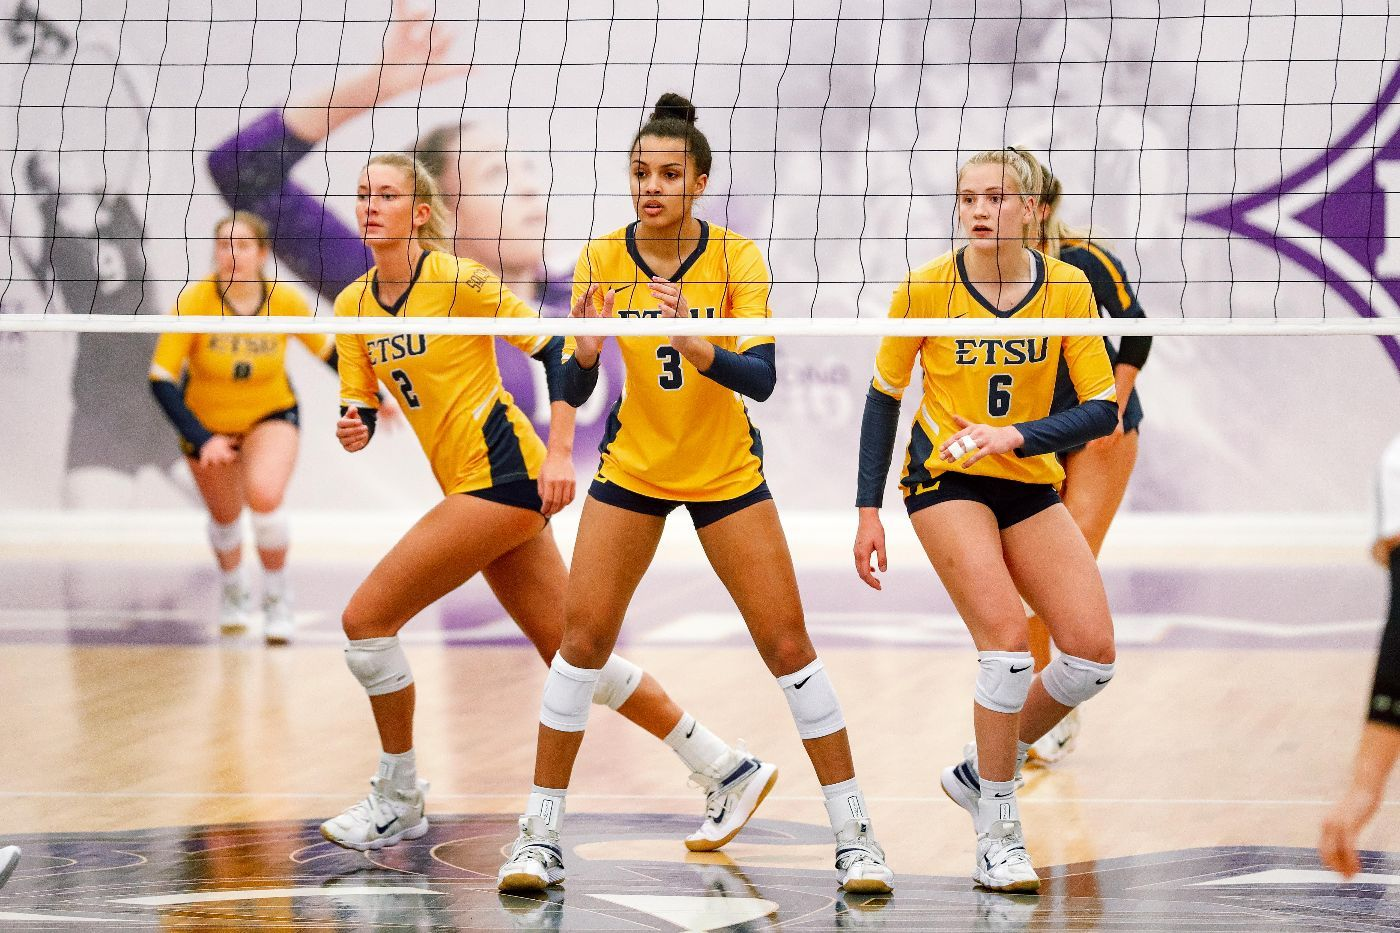 ETSU Hosts UNCG for Spring Volleyball Home Opener